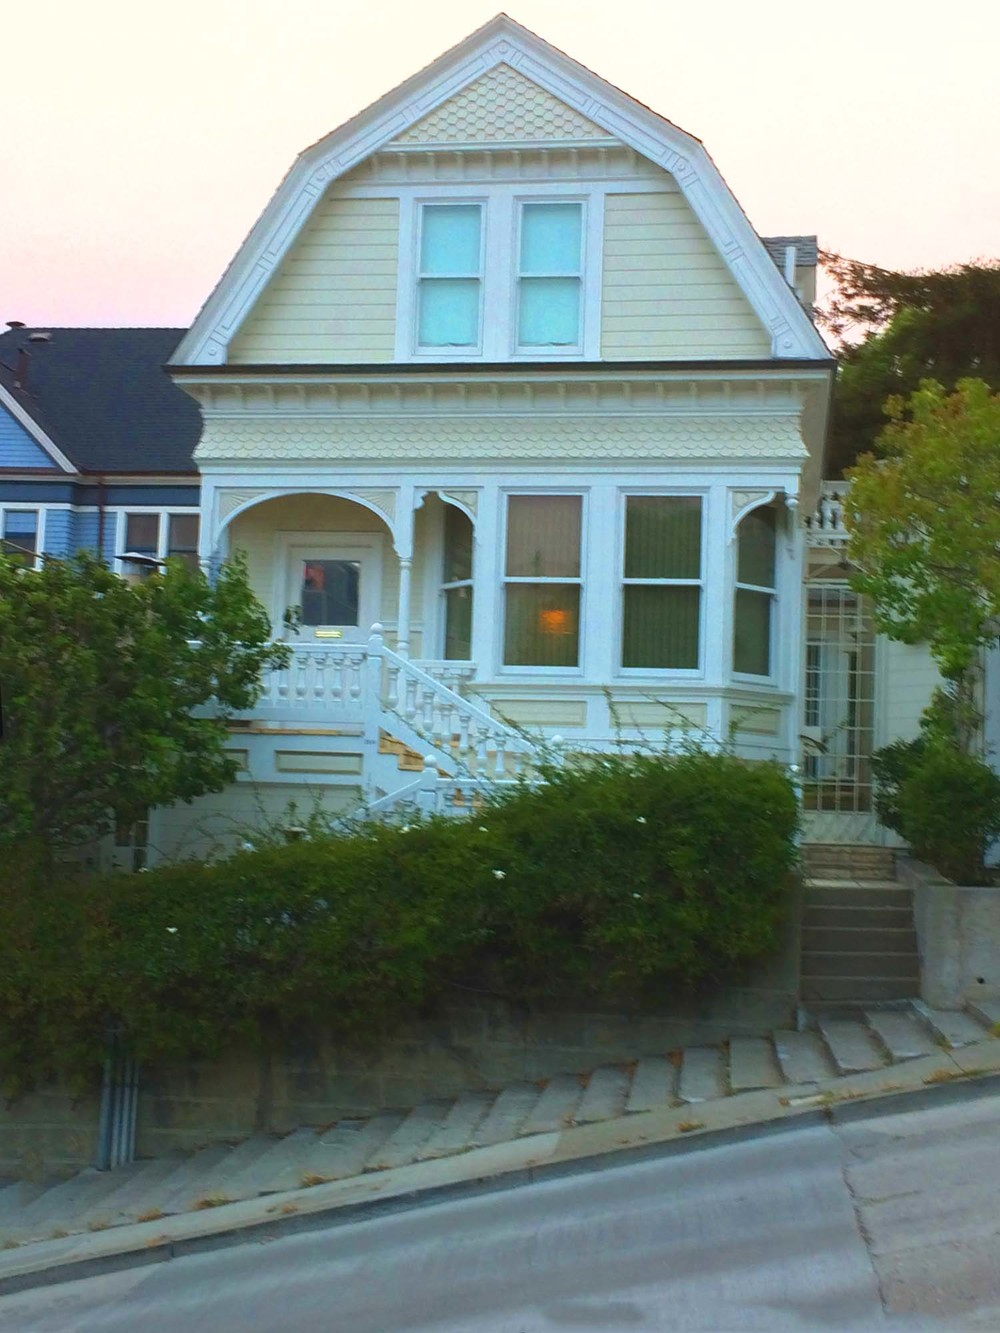 Pacific Heights, San Francisco, California  | Image:  Laura Messersmith